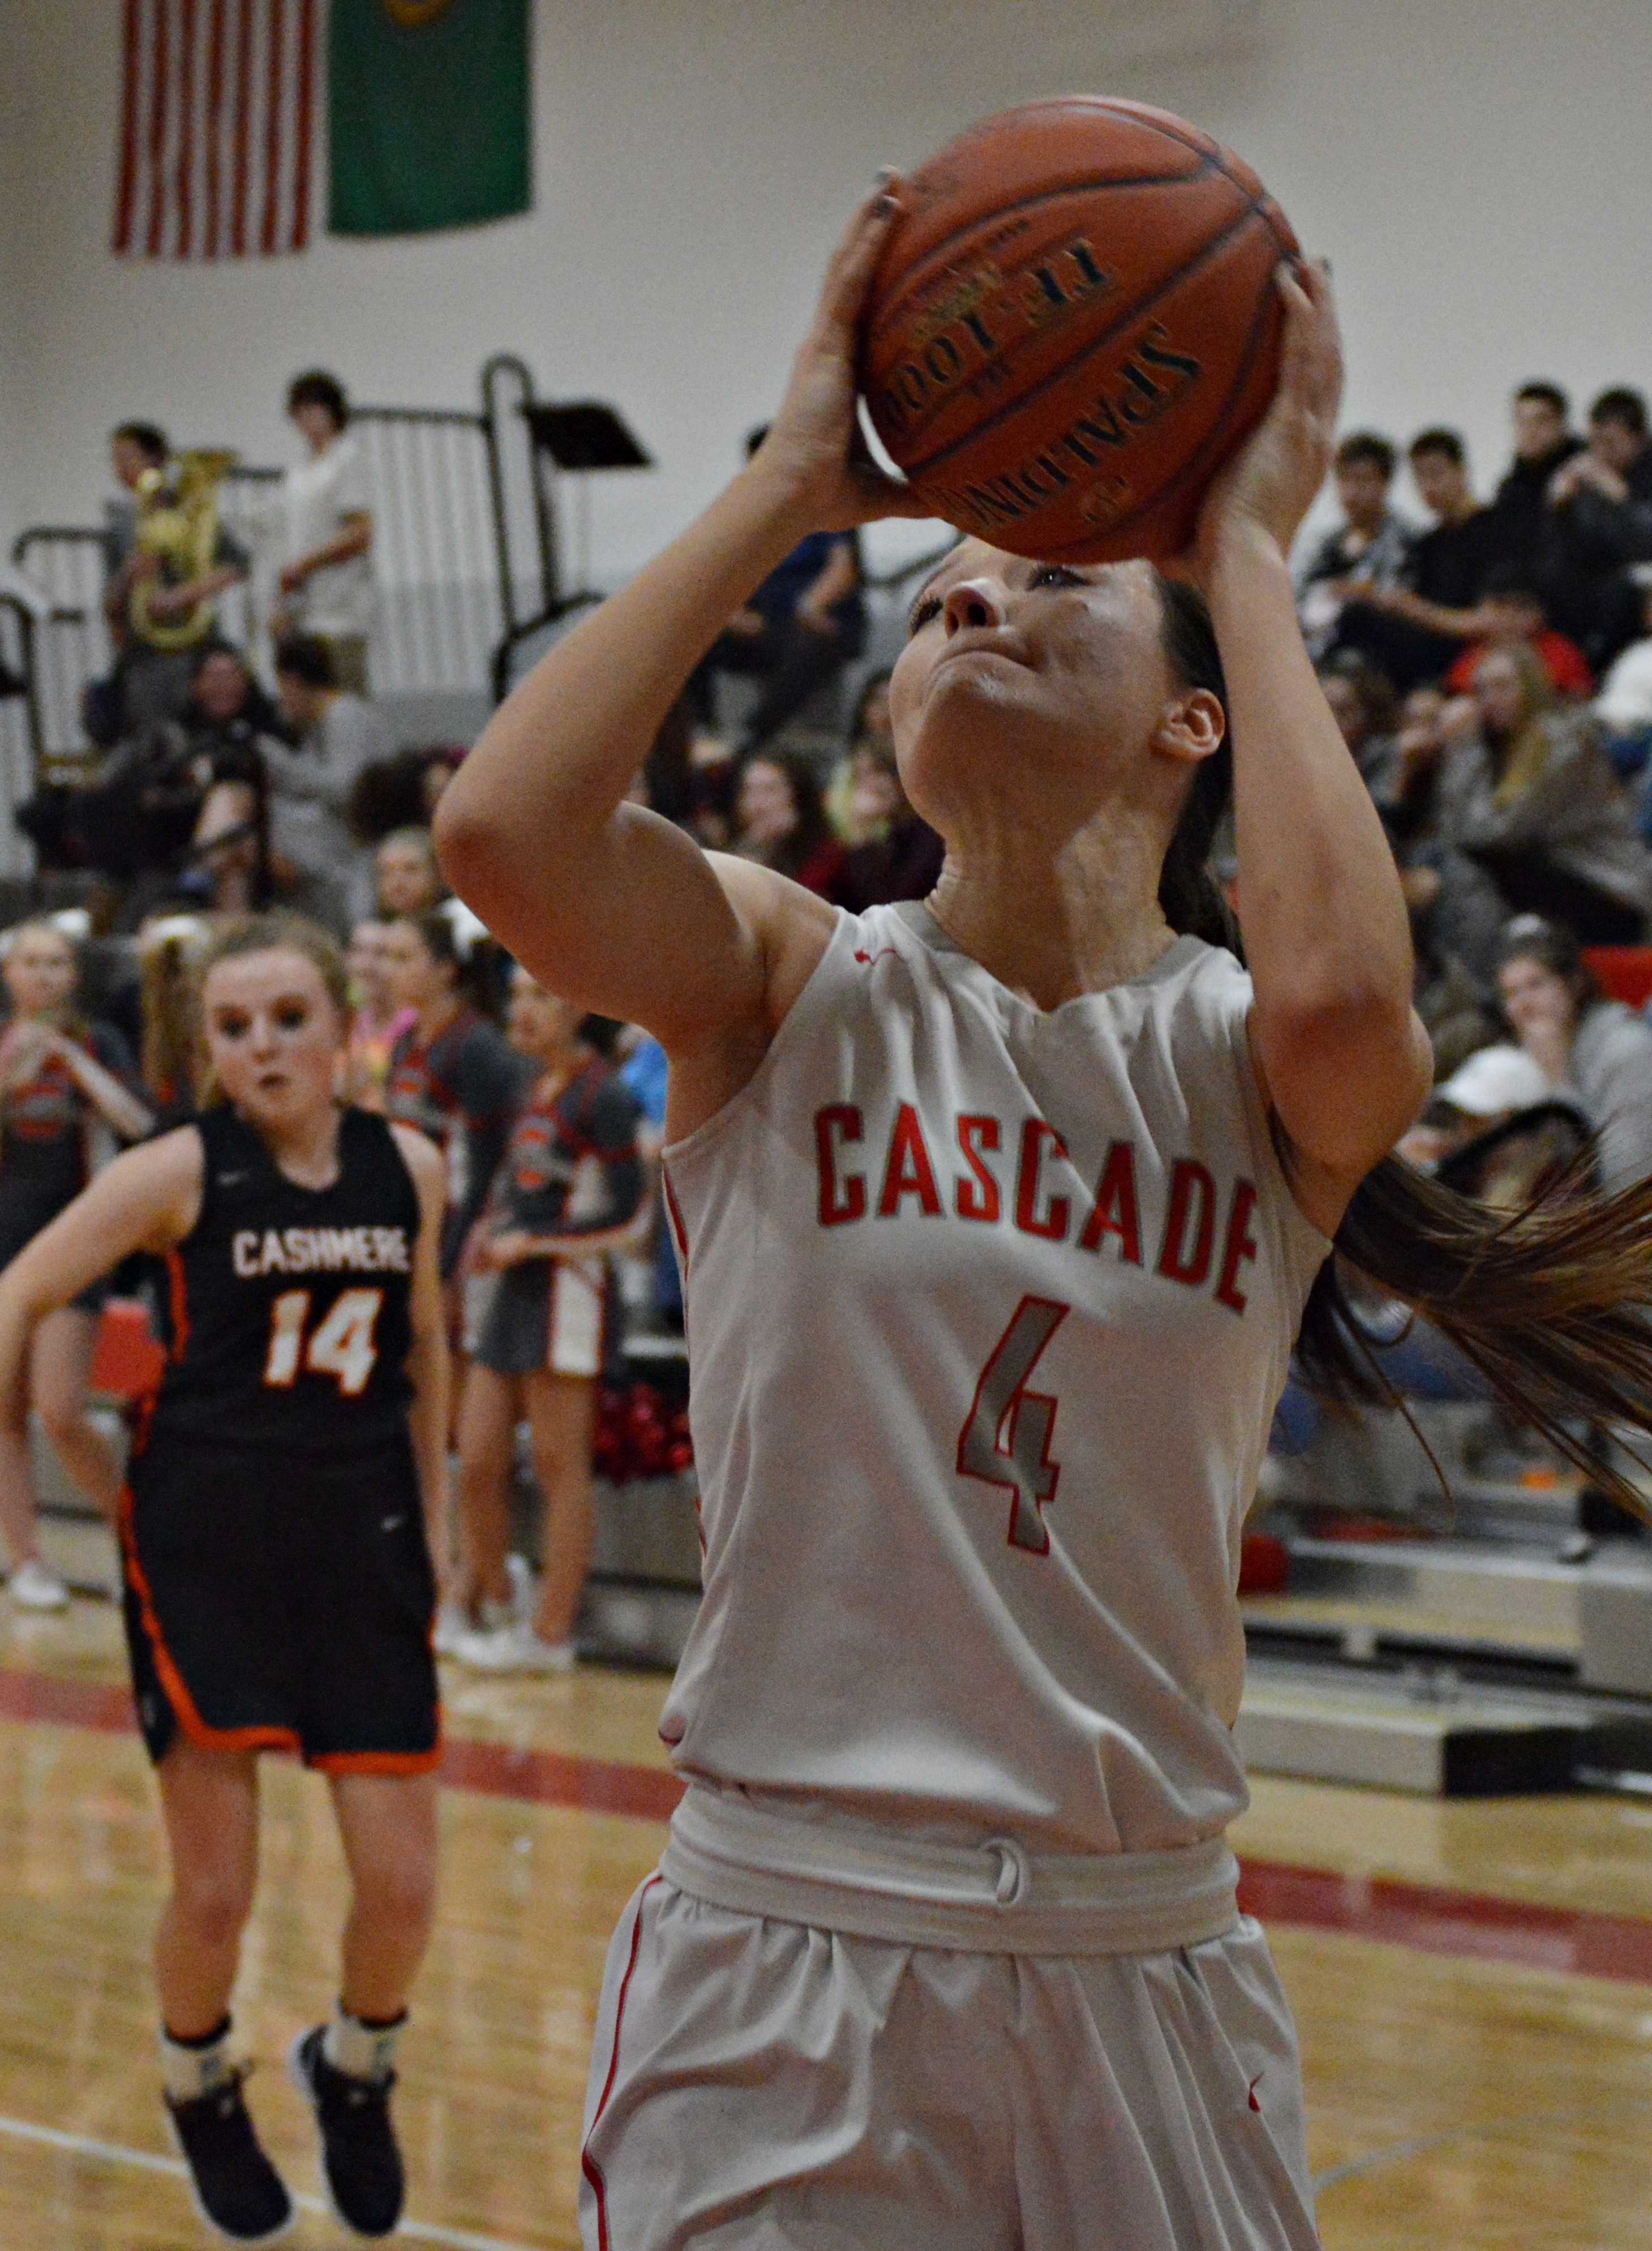 Kaija Lovelady was one of the seniors who wore a Cascade jersey for the last time.